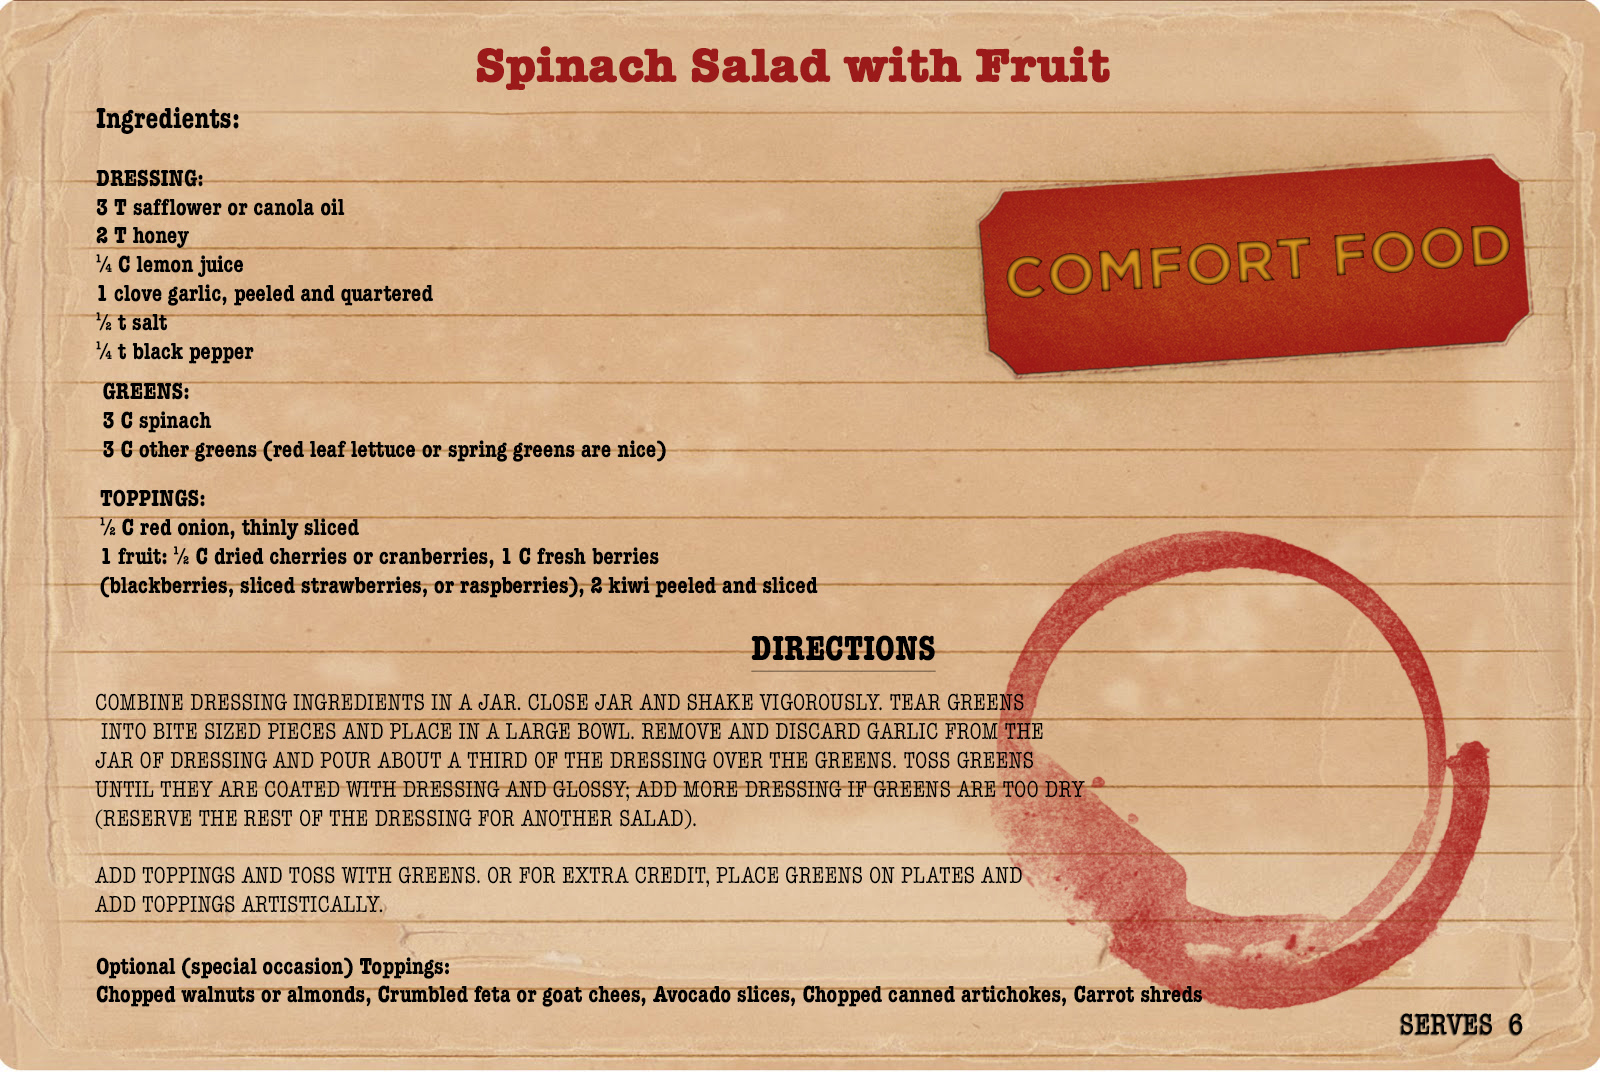 This recipe was adapted from the Colorado Collage Cookbook.